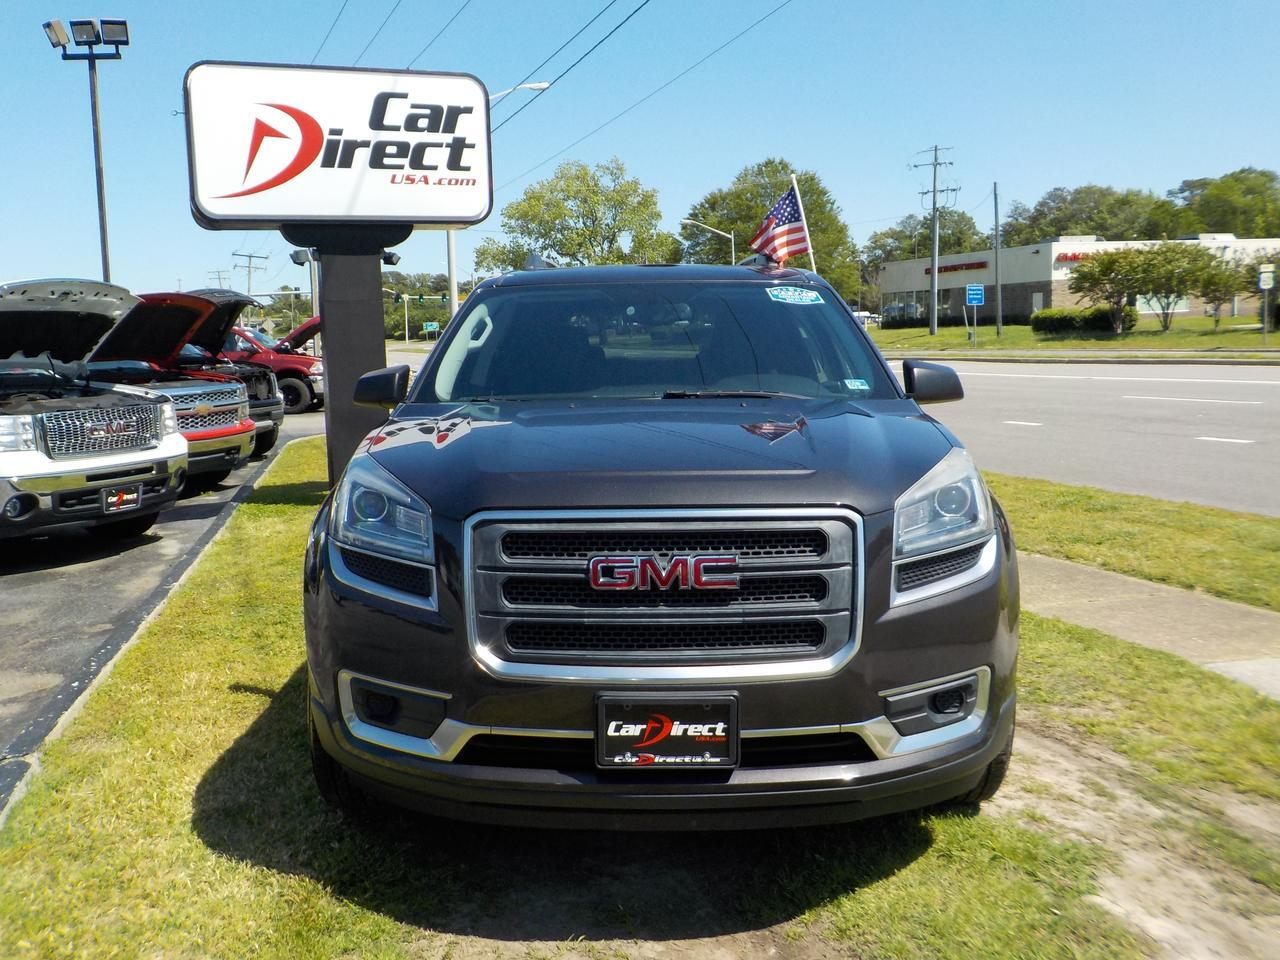 2014 GMC ACADIA SLE AWD, 3RD ROW SEATING, SUNROOF, REMOTE START, TOW, BLUETOOTH, POWER LIFTGATE, BACKUP CAMERA! Virginia Beach VA